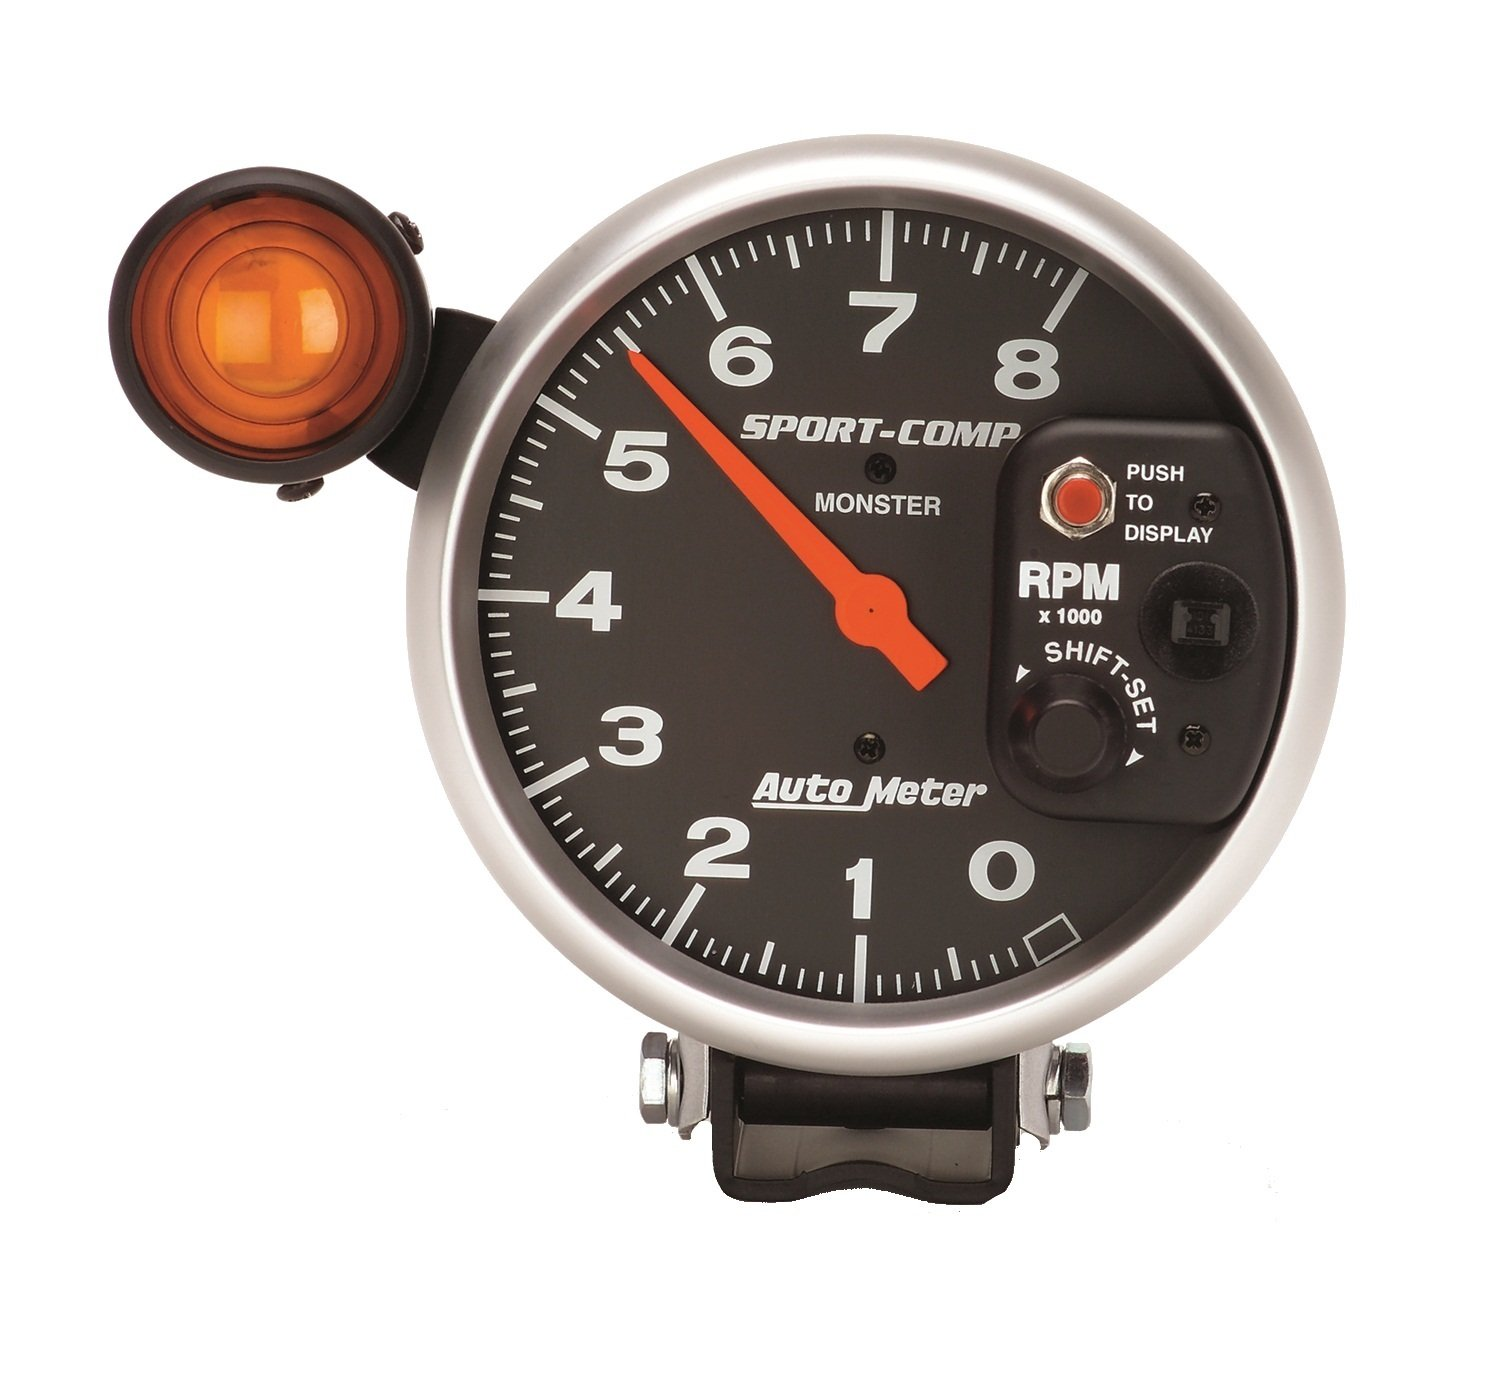 Auto Meter 3905 Sport-Comp Shift-Lite Tachometer by Auto Meter (Image #2)